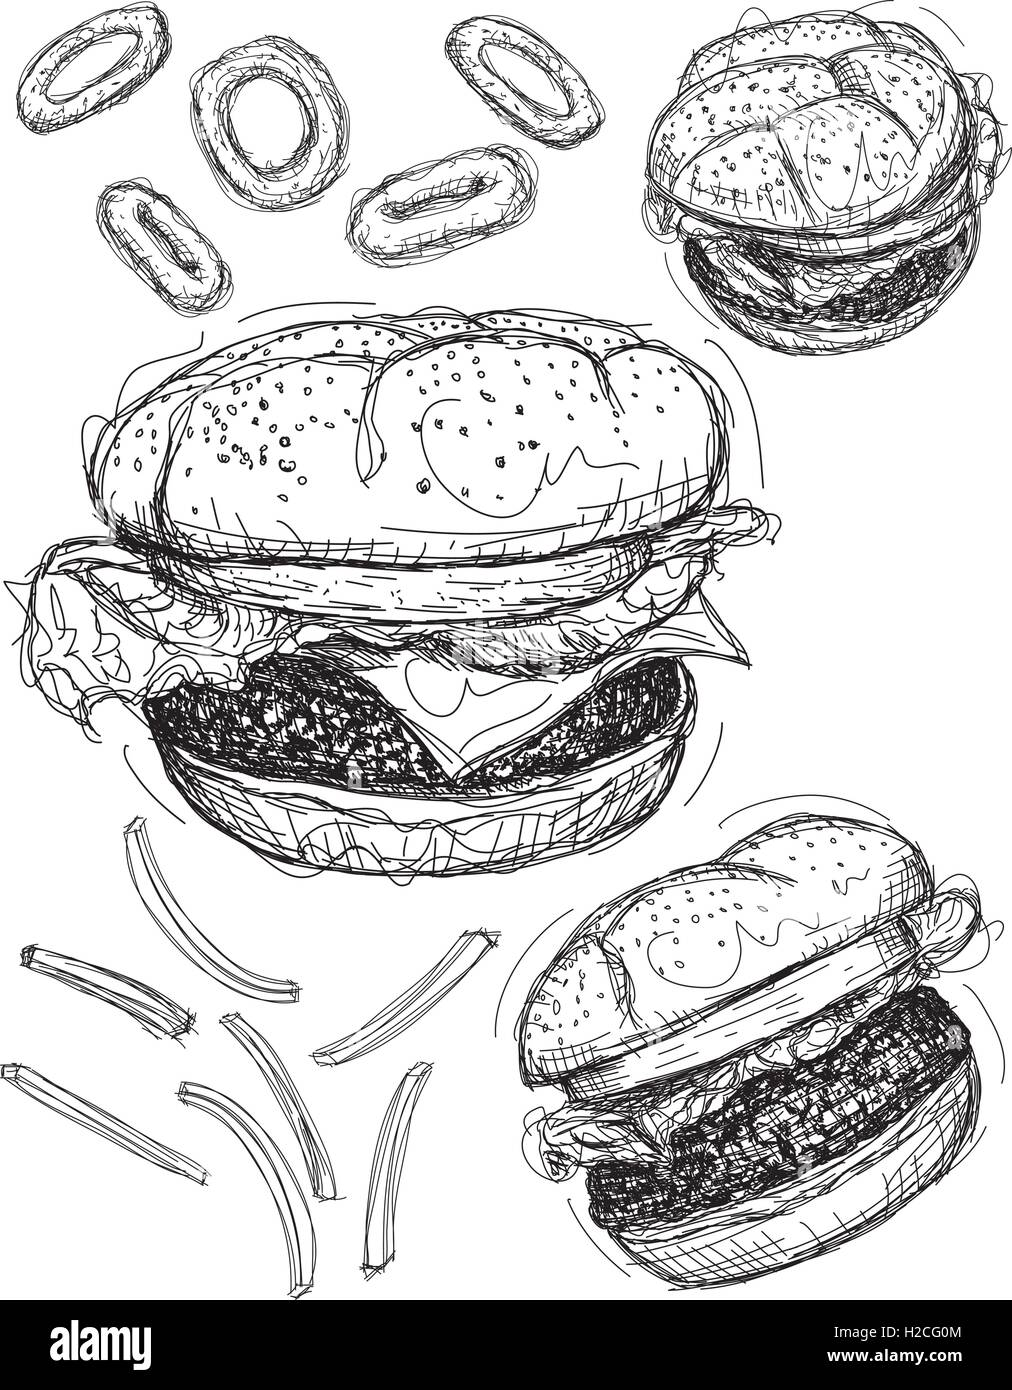 Hamburger sketches A cheeseburger and two hamburgers with onion rings and french fries - Stock Vector